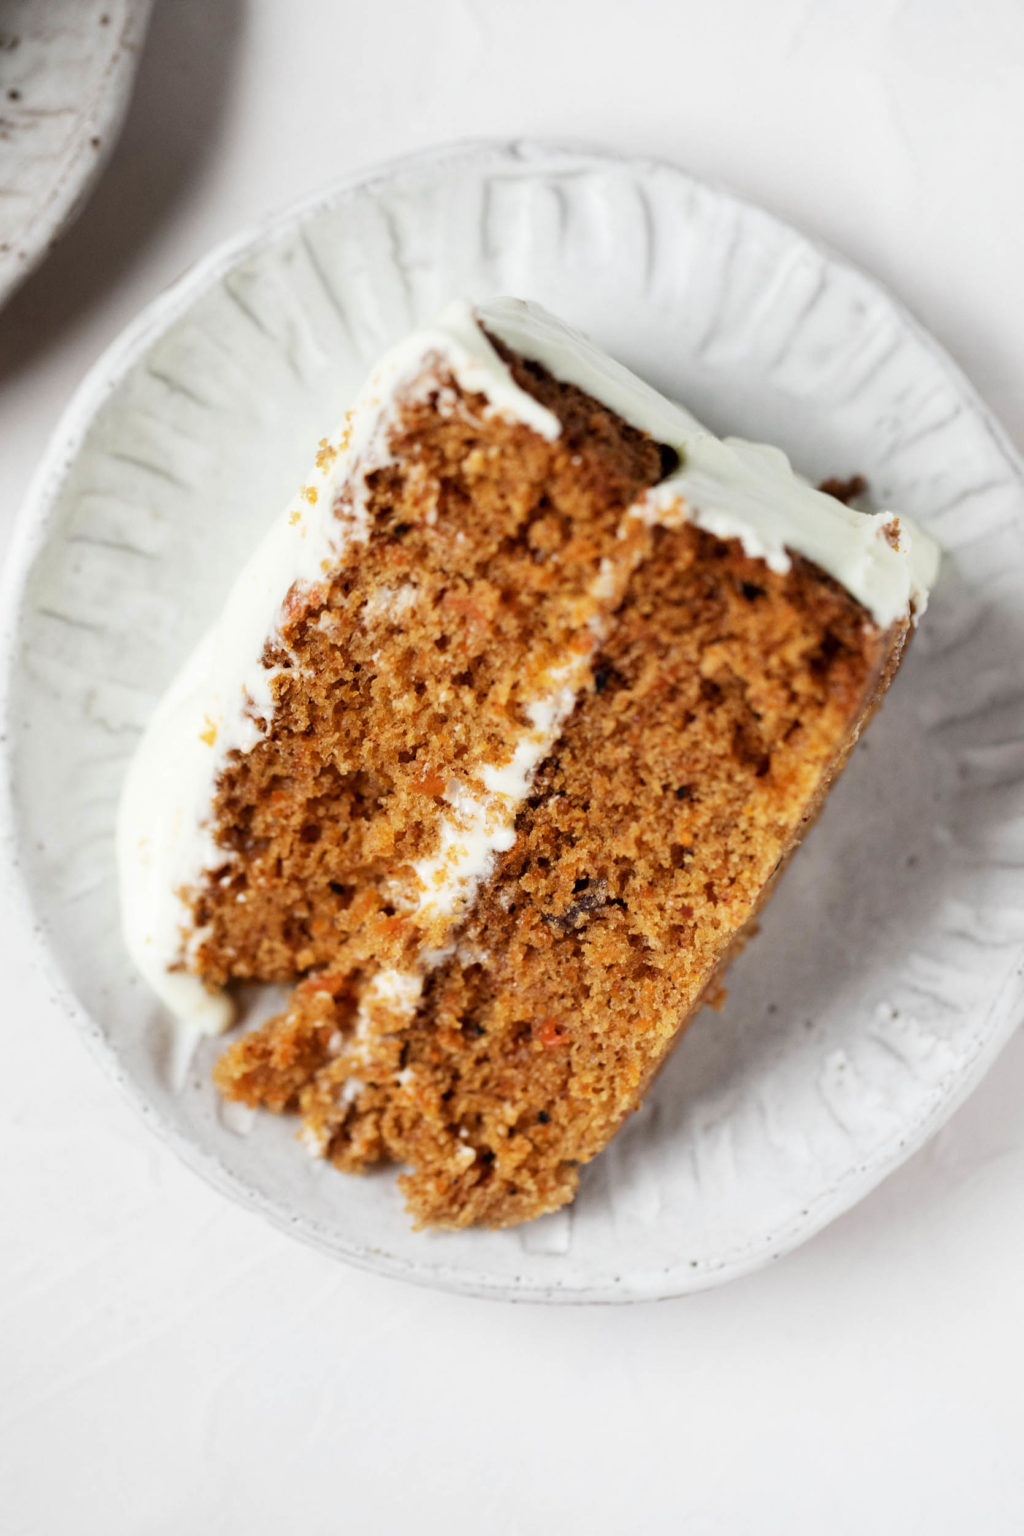 An overhead photograph of a dessert plate with a slice of vegan pumpkin carrot cake, lightly frosted with cream cheese frosting.